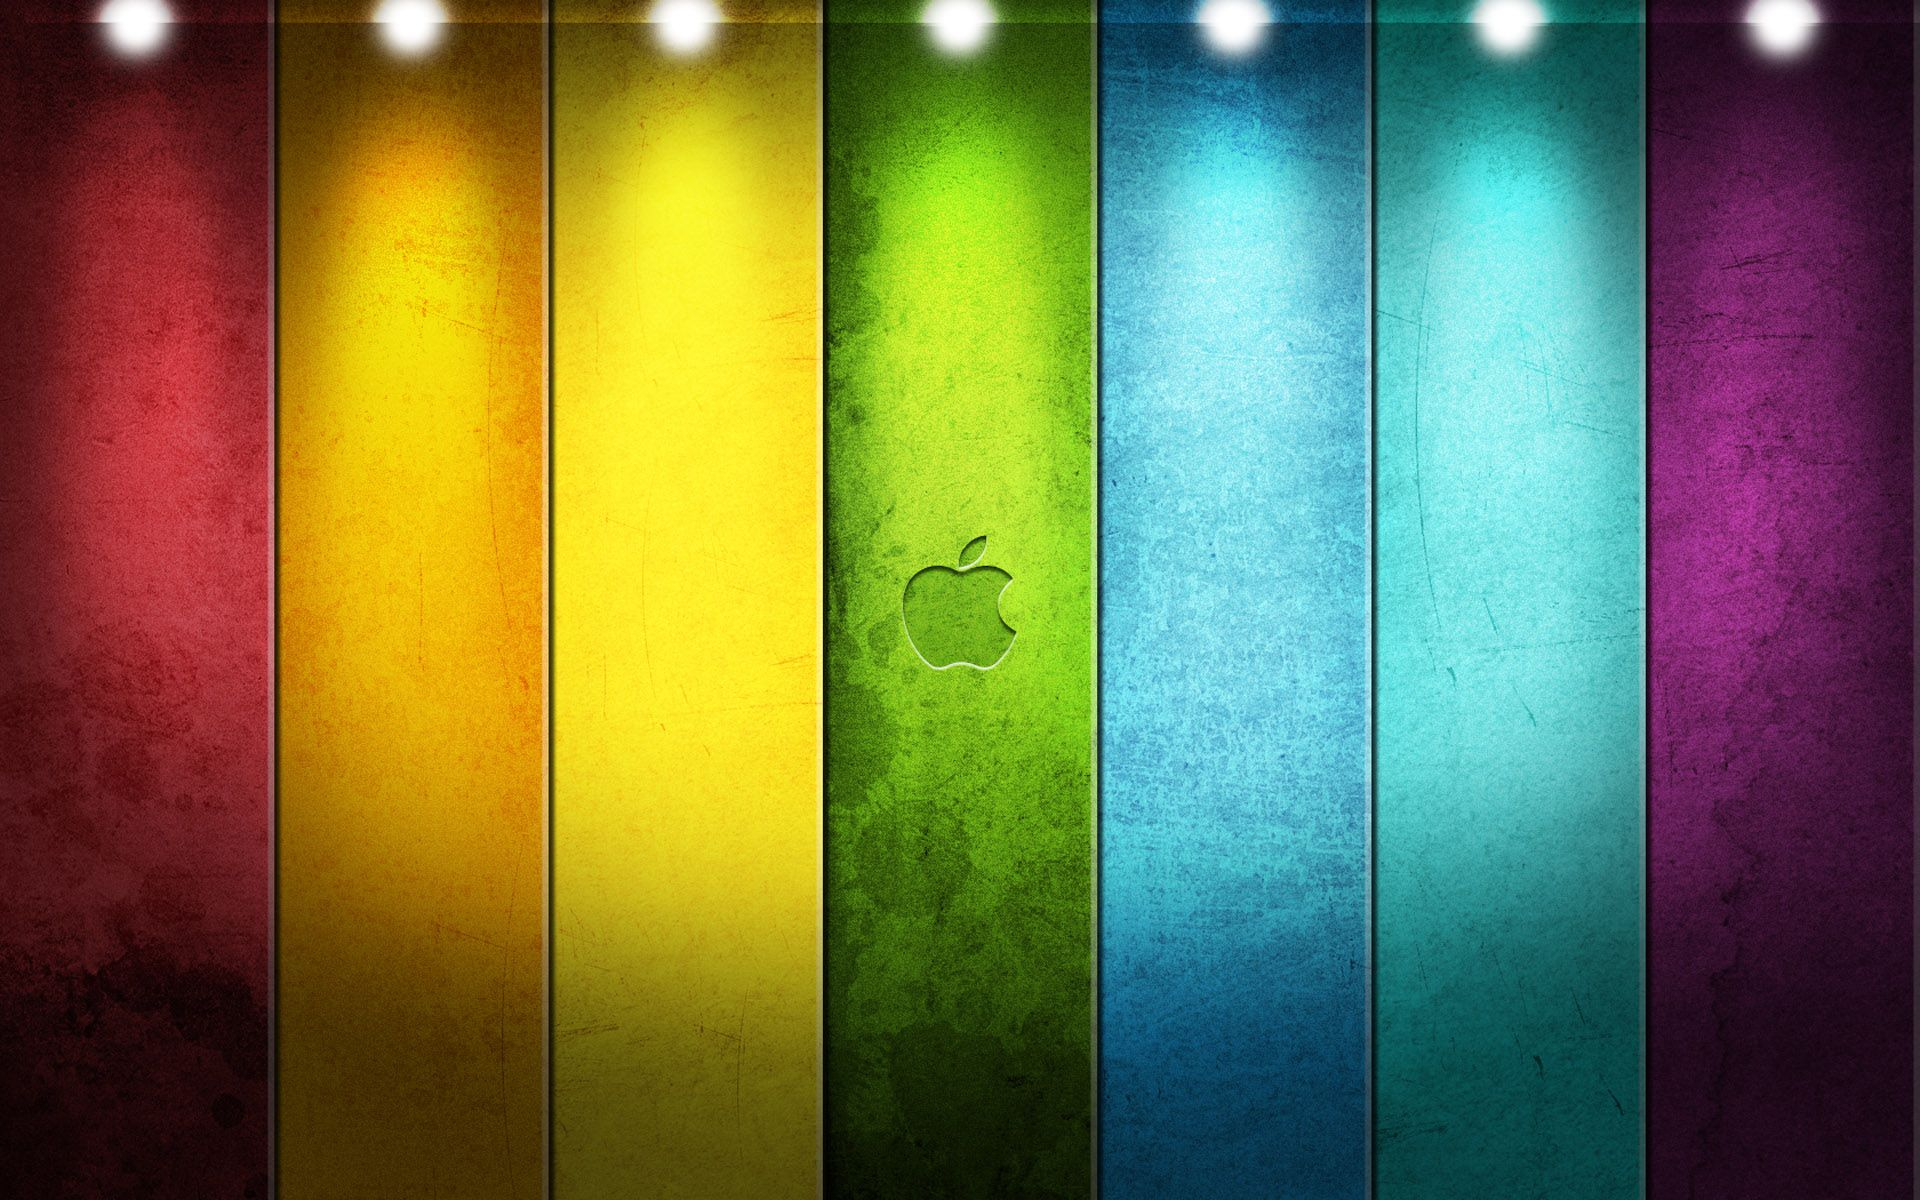 Colors Wallpaper Desktop Find Best Latest In HD For Your PC Background Mobile Phones